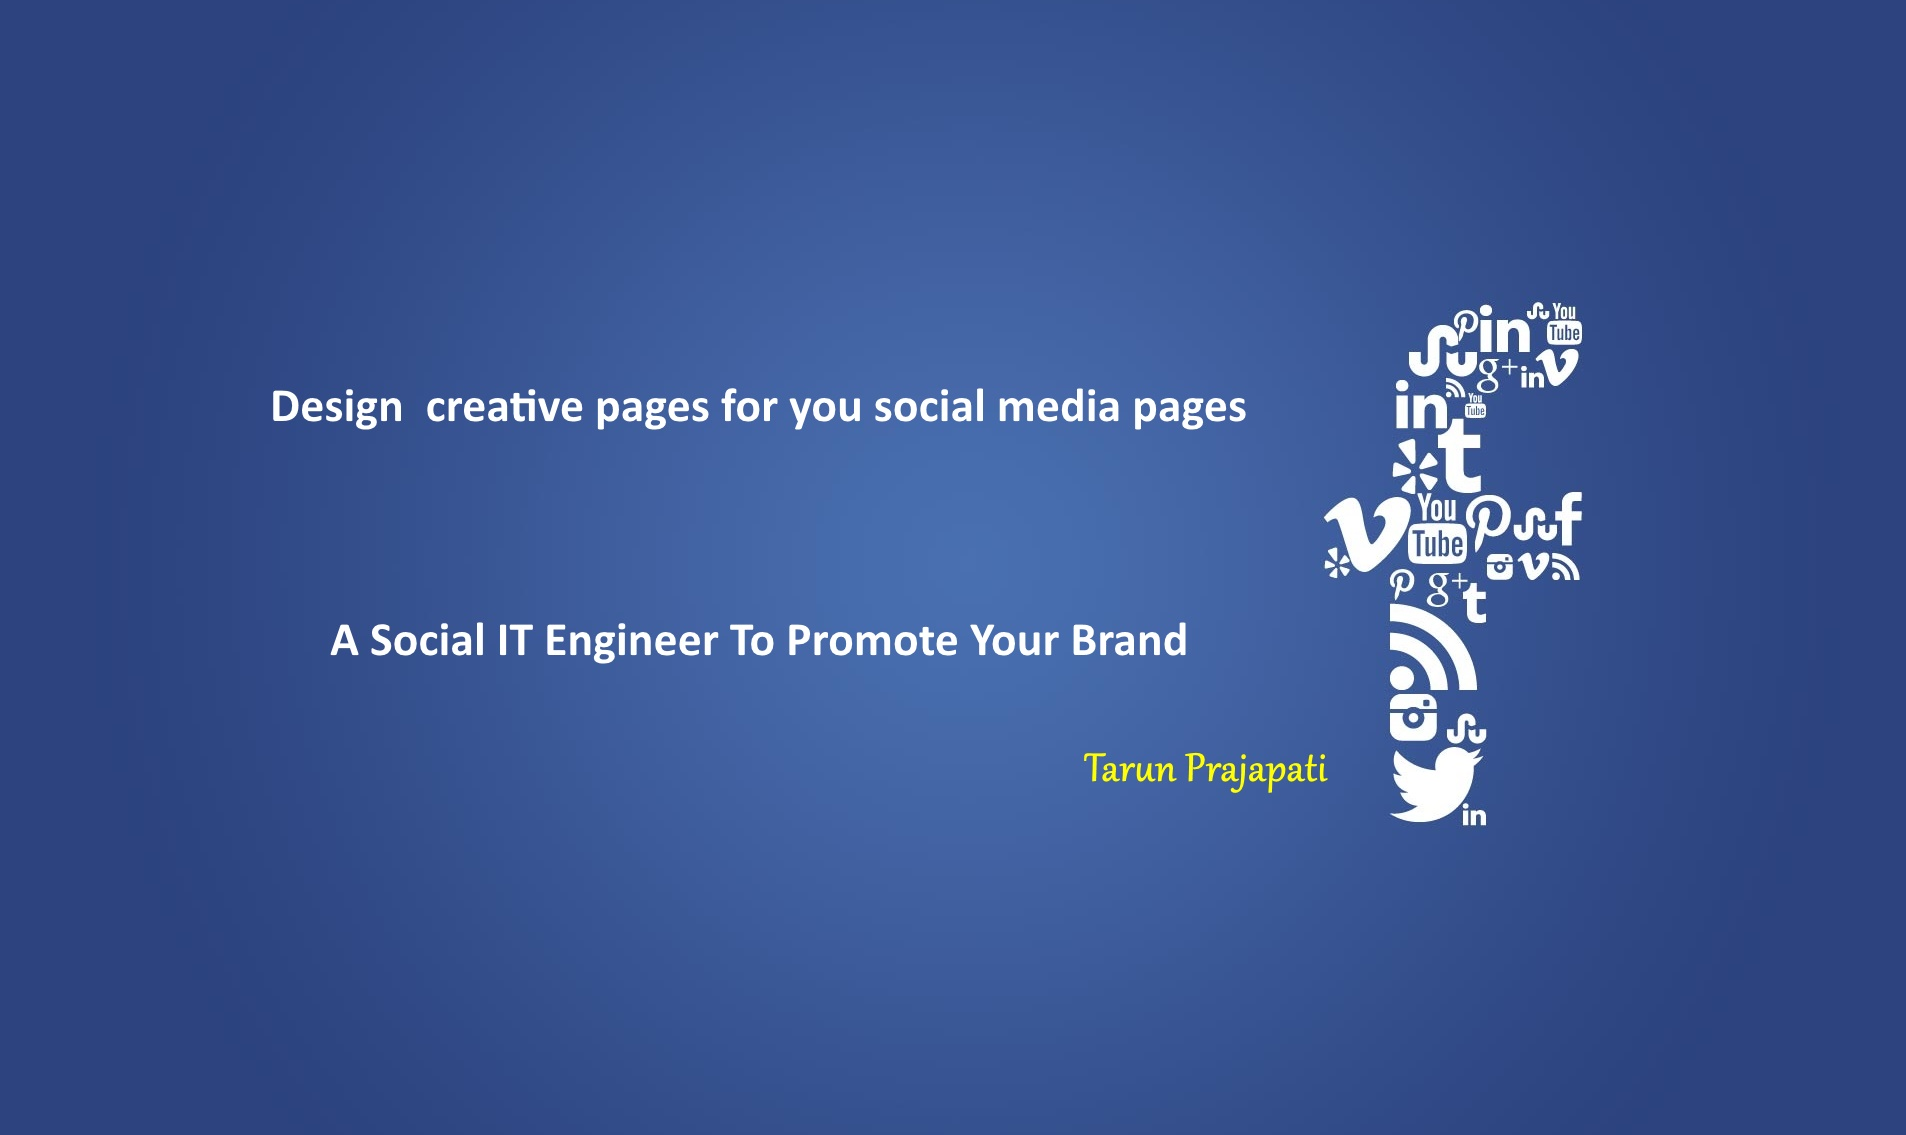 make creative pages for Facebook and twitter